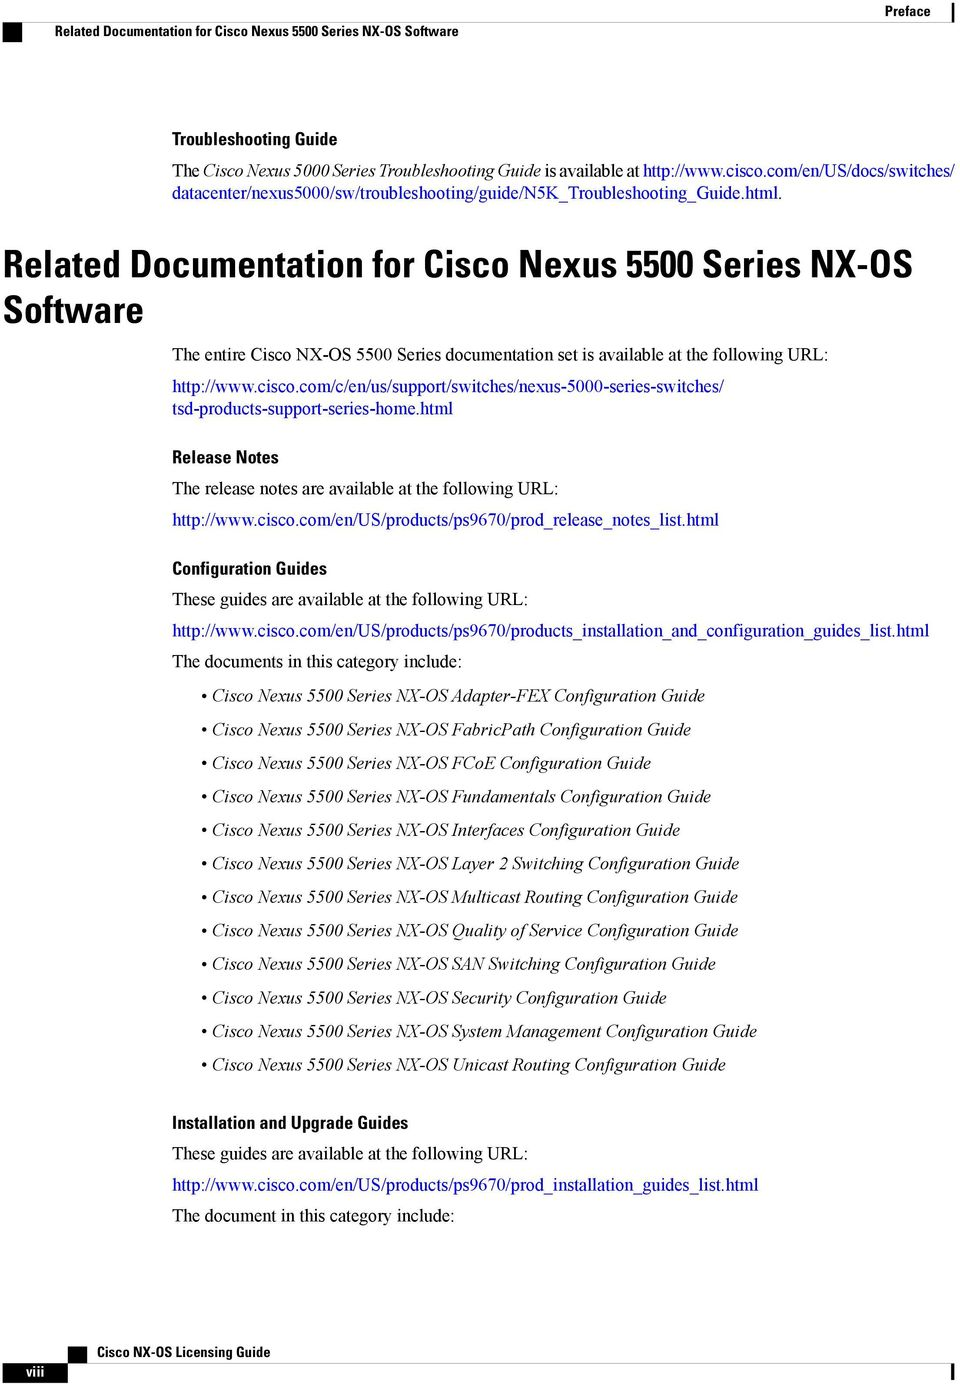 Related Documentation for Cisco Nexus 5500 Series NX-OS Software The entire Cisco NX-OS 5500 Series documentation set is available at the following URL: http://www.cisco.